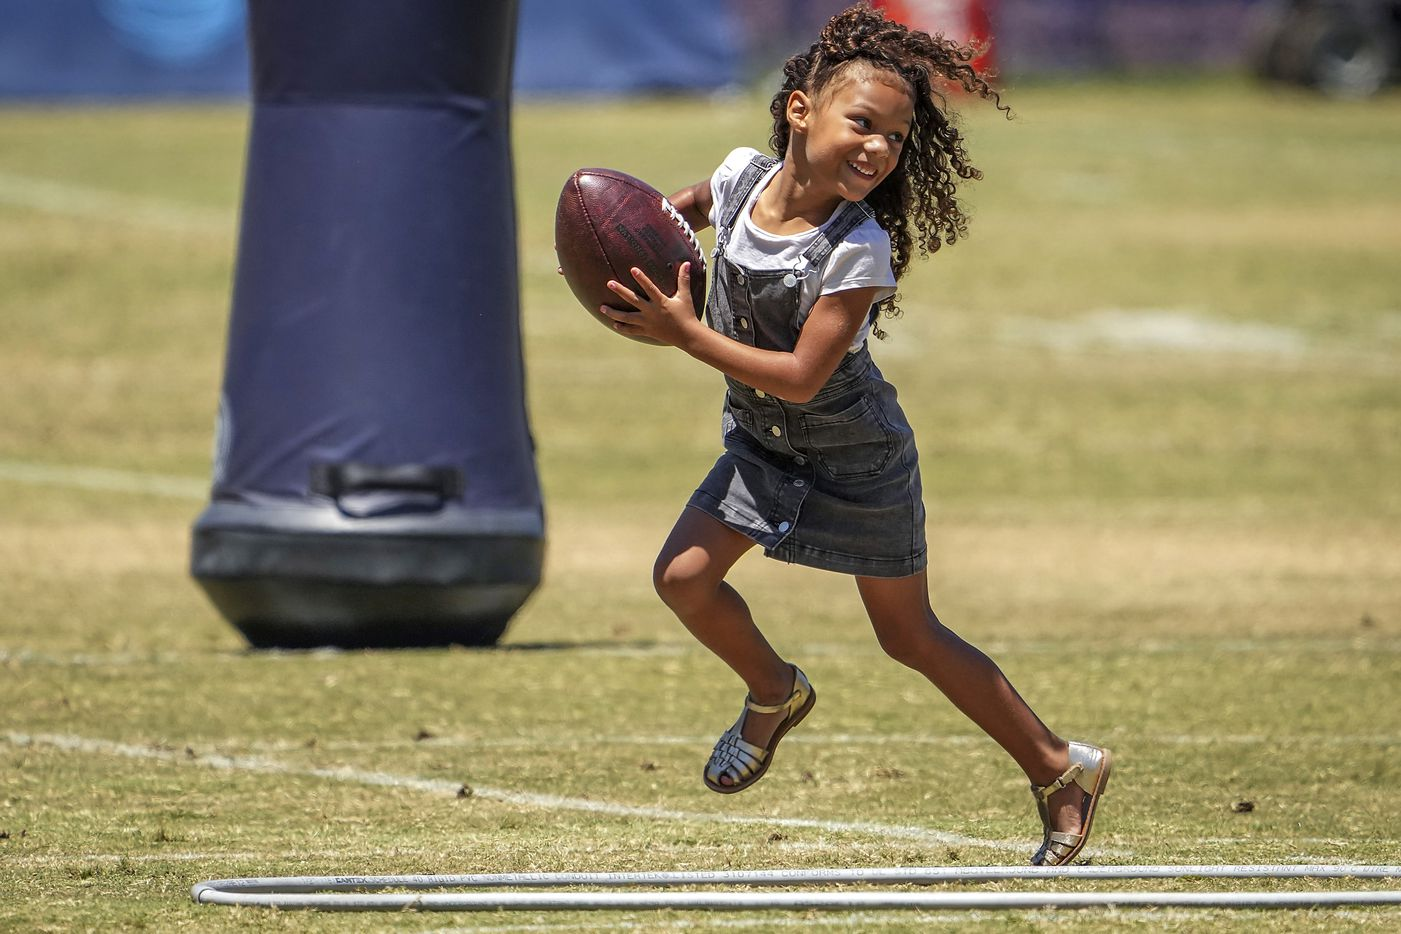 Sophia Gregory, daughter of Dallas Cowboys defensive end Randy Gregory, plays on the field after a practice at training camp on Sunday, Aug. 1, 2021, in Oxnard, Calif.